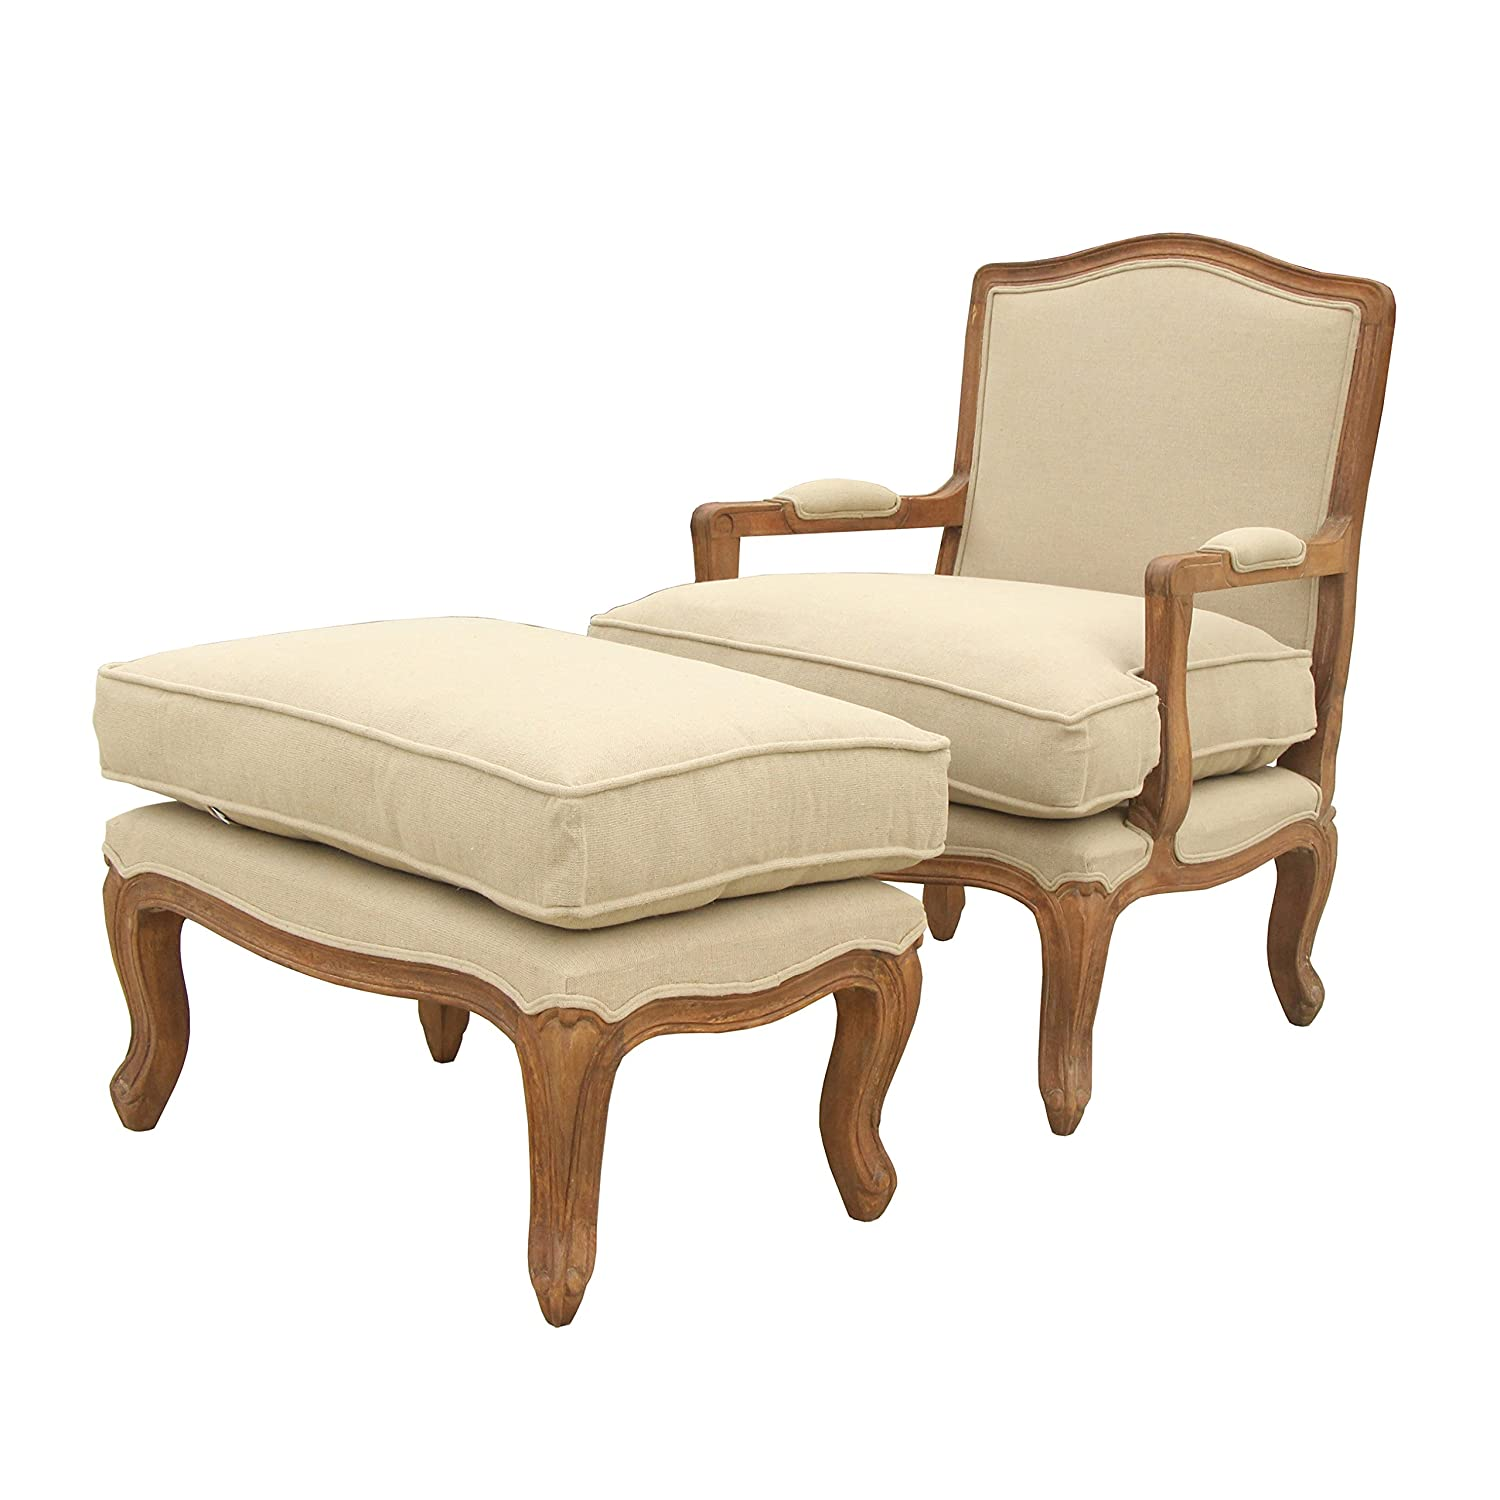 Louis Style Bedroom Furniture Louis Style Square Back Armchair For Dining Room Living Room Or